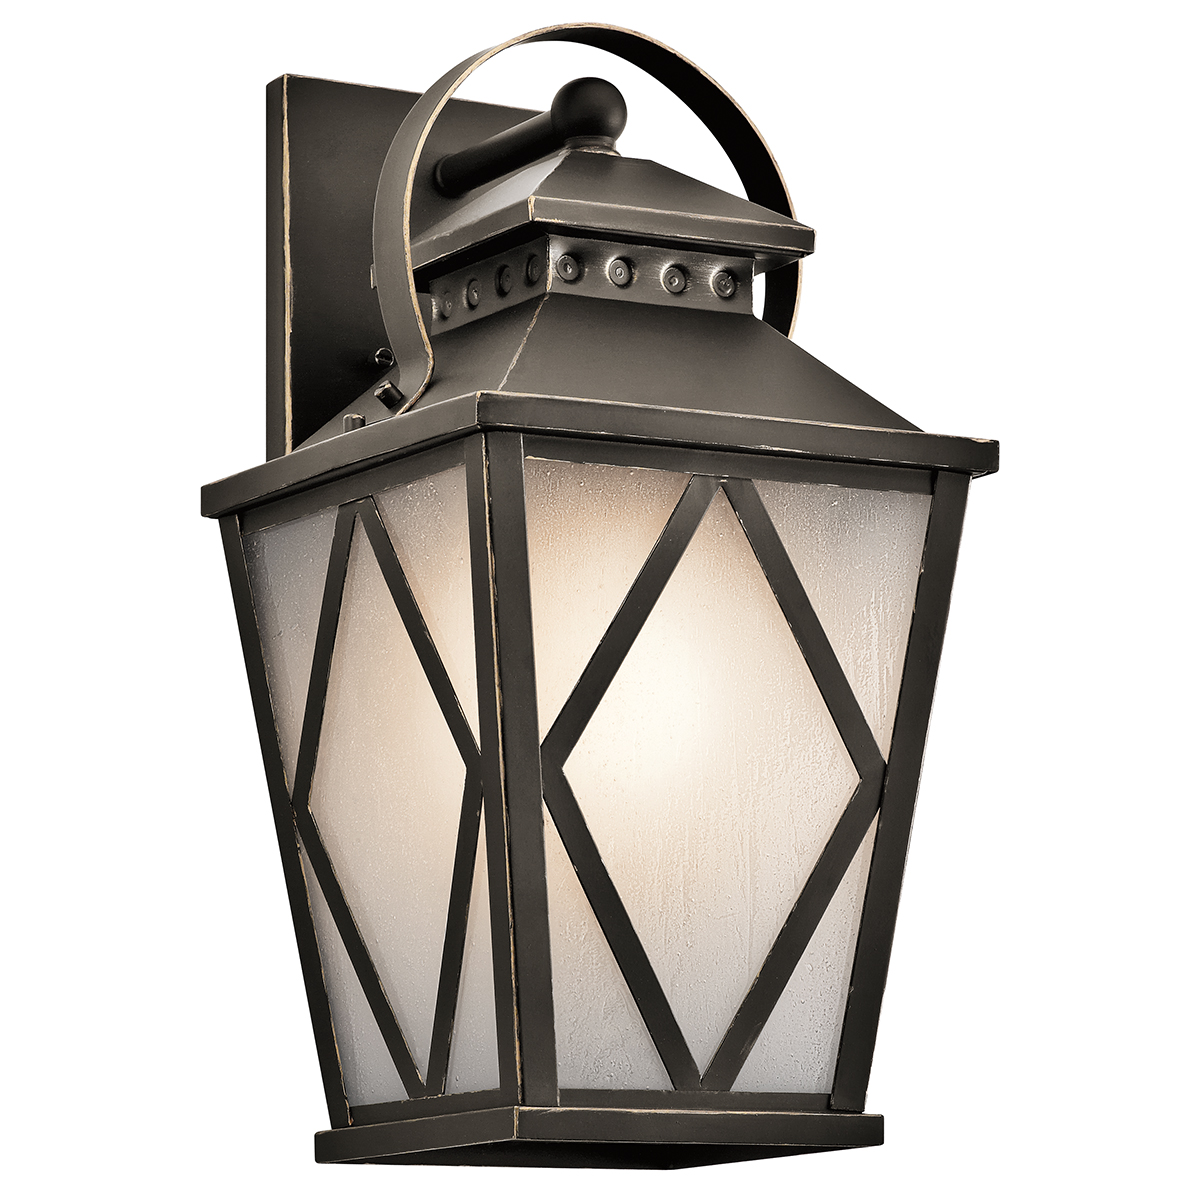 Outdoor Wall Sconce Kichler : Kichler Lighting (49292OZ) Hayman Bay 1-Light Outdoor Wall Sconce in Olde Bronze